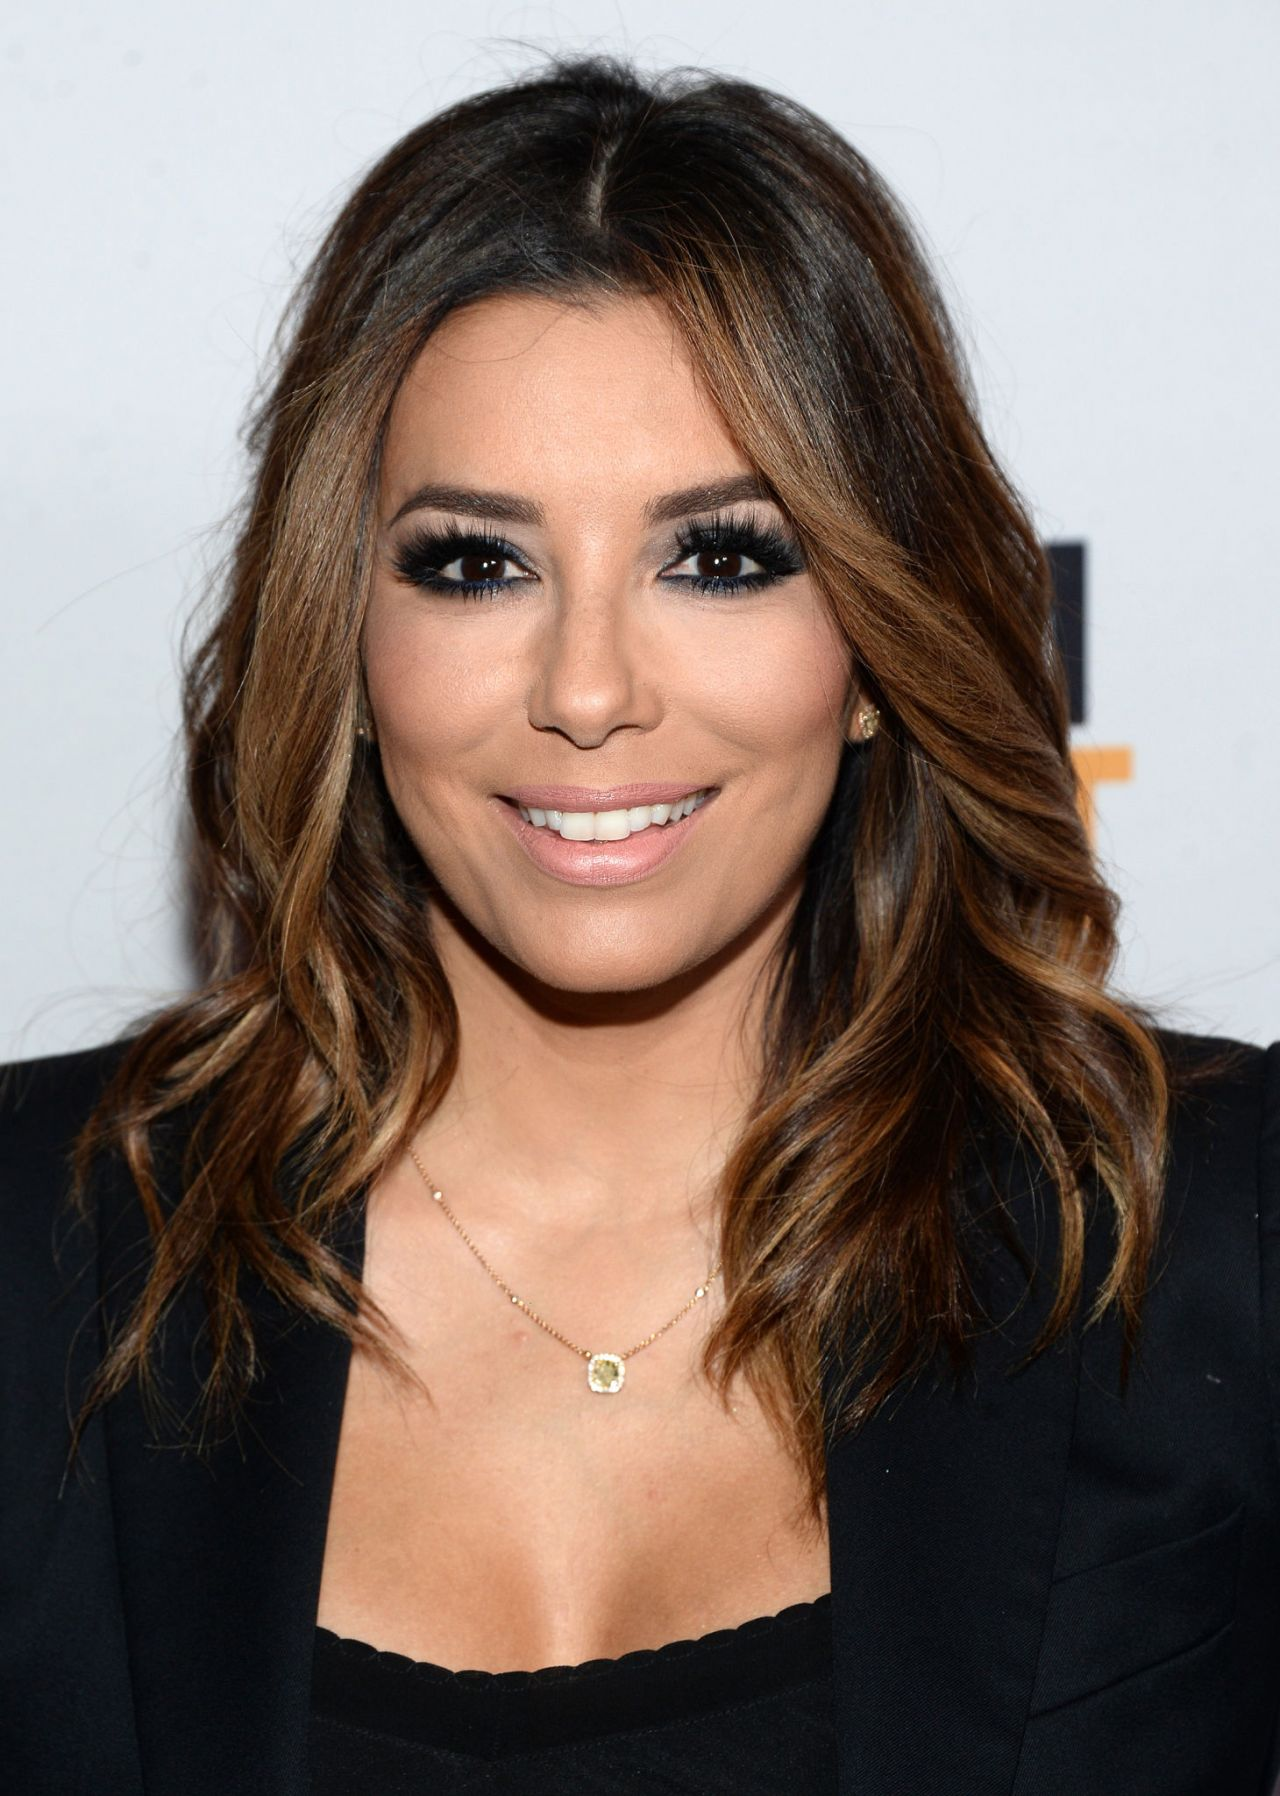 Eva Longoria – ESPN Shorts at the 2016 Los Angeles Film Festival Eva Longoria